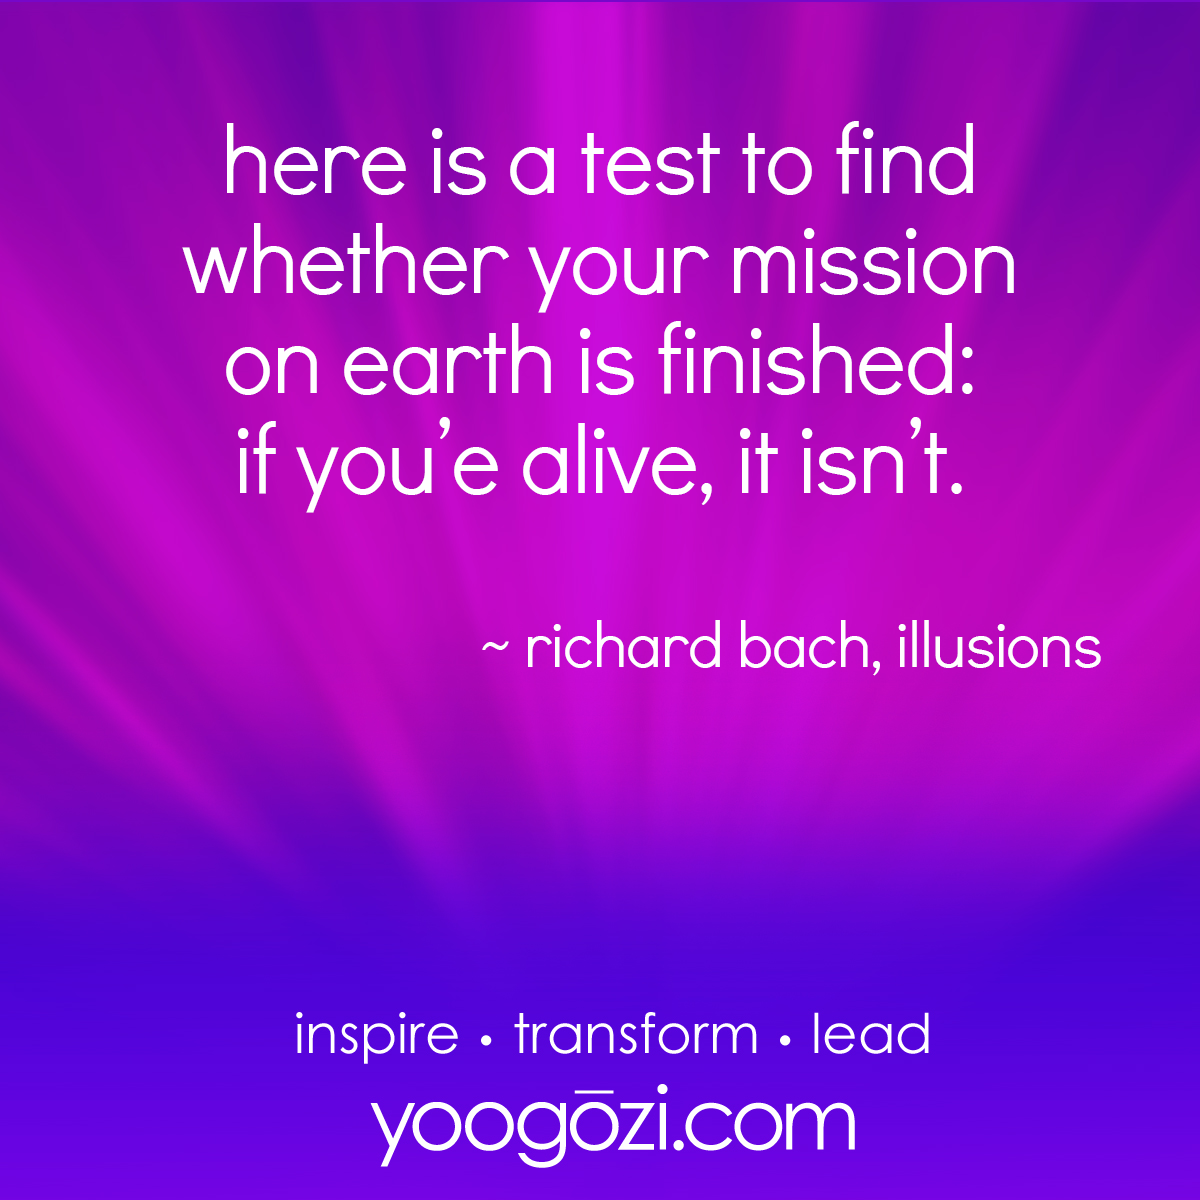 here is a test to find whether your mission on earth is finished: if you're alive, it isn't. ~richard bach illusions